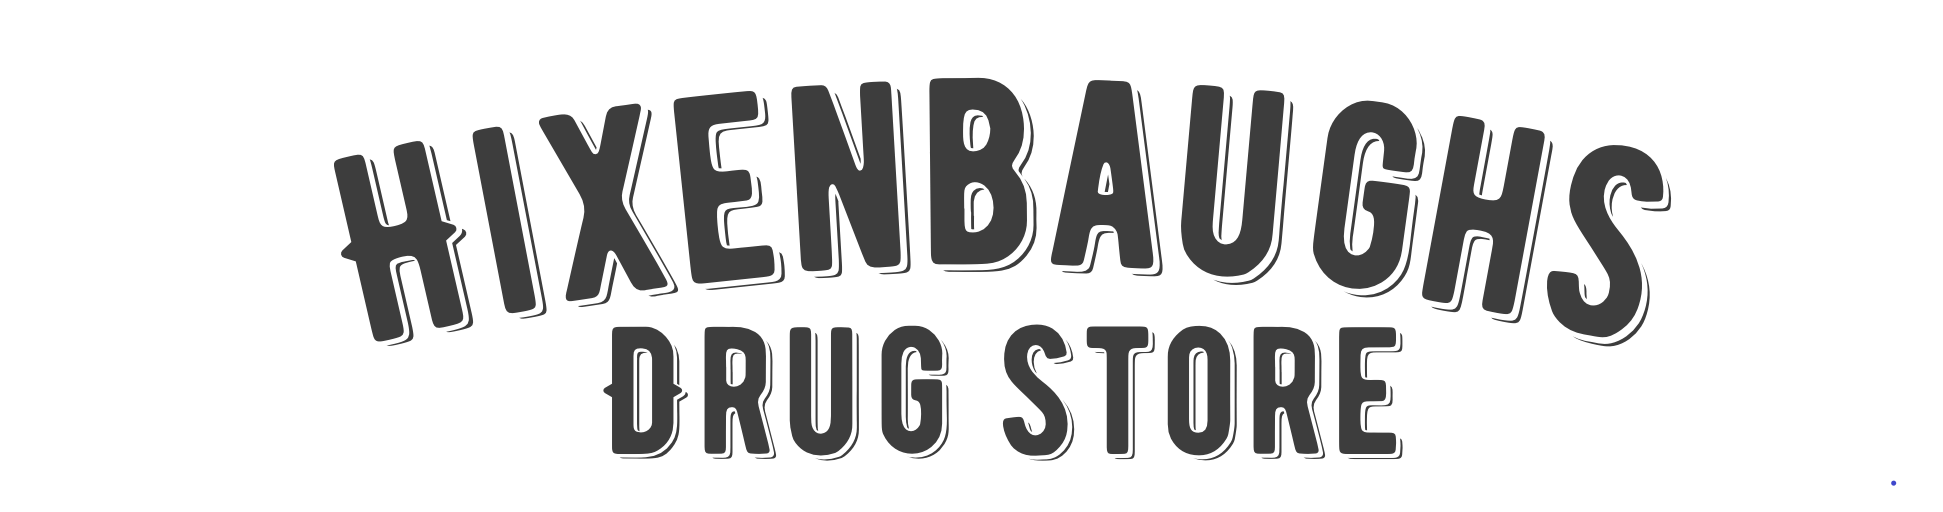 Hixenbaugh's Drug Store